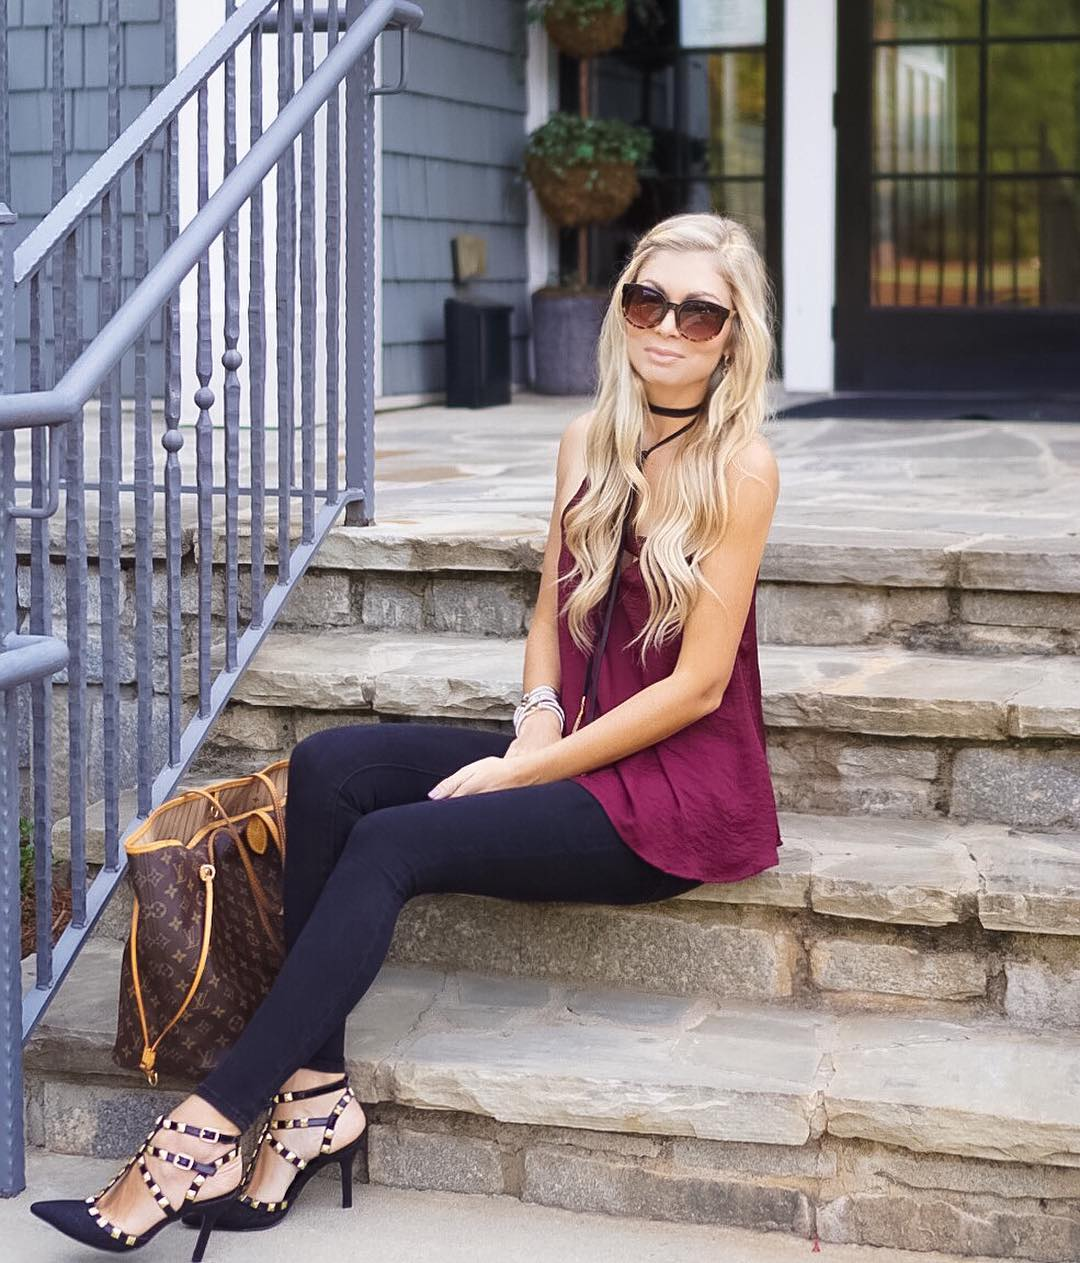 Happy Friday! Thankful this week is over and I can watch football all day tomorrow!! {And my entire outfit it under $100} http://liketk.it/2pnWH #tgif #happyfriday #liketkitunder50 #liketkitunder100 #liketkit #wiw #ootd #rolltide